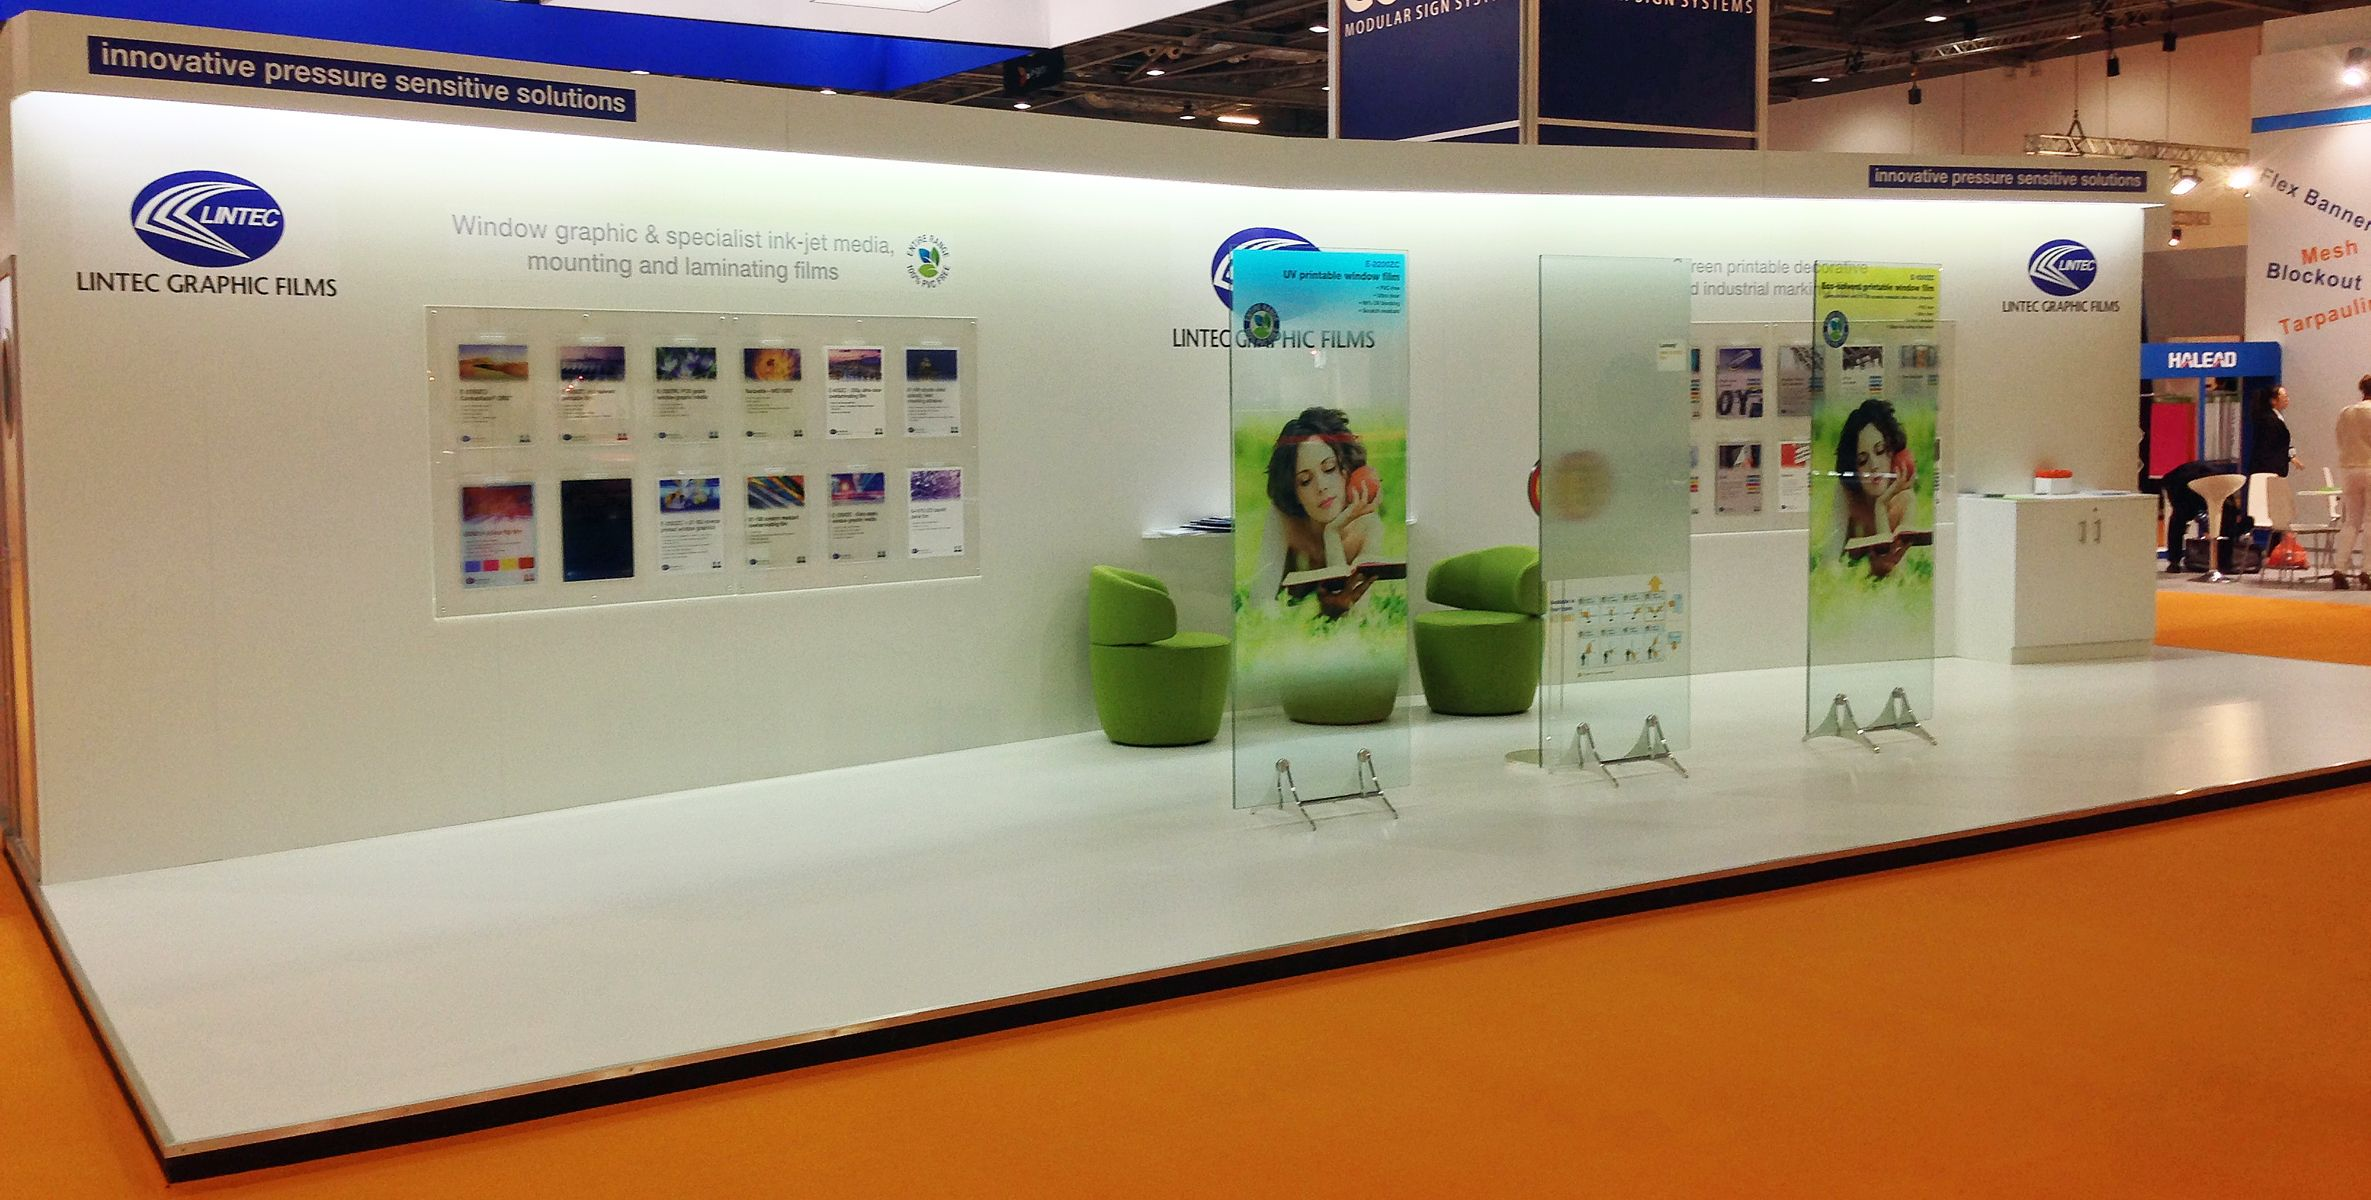 Lintec_Graphic_Films_Fespa_2013.jpg